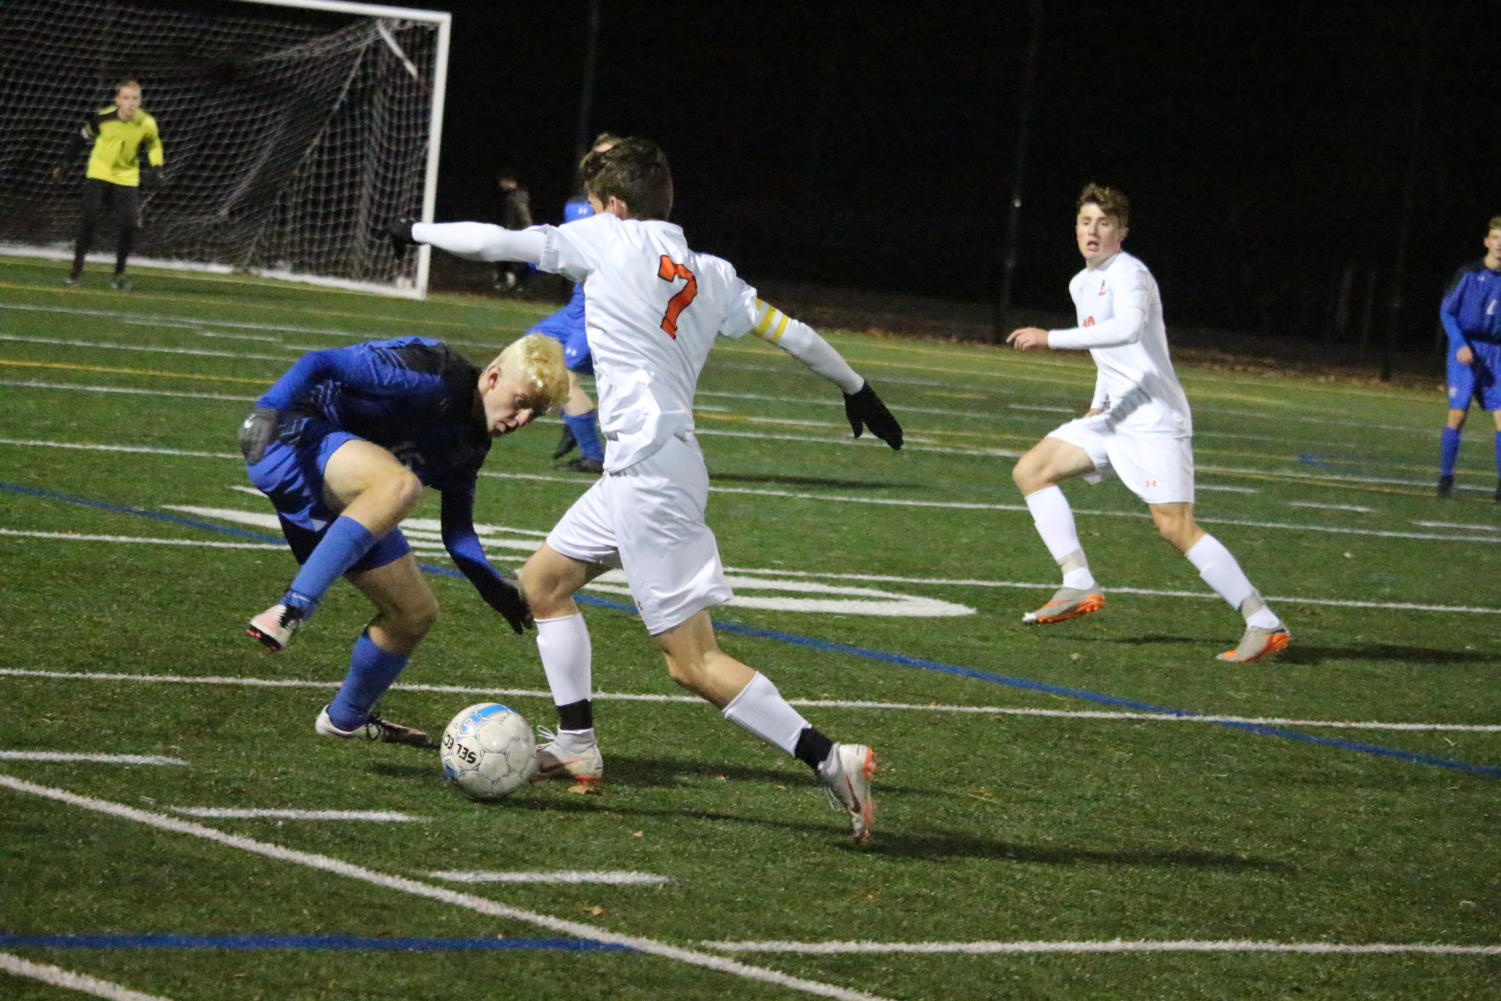 Senior+captain+Andrew+D%27Amico+makes+a+move+on+a+Bedford+defender.